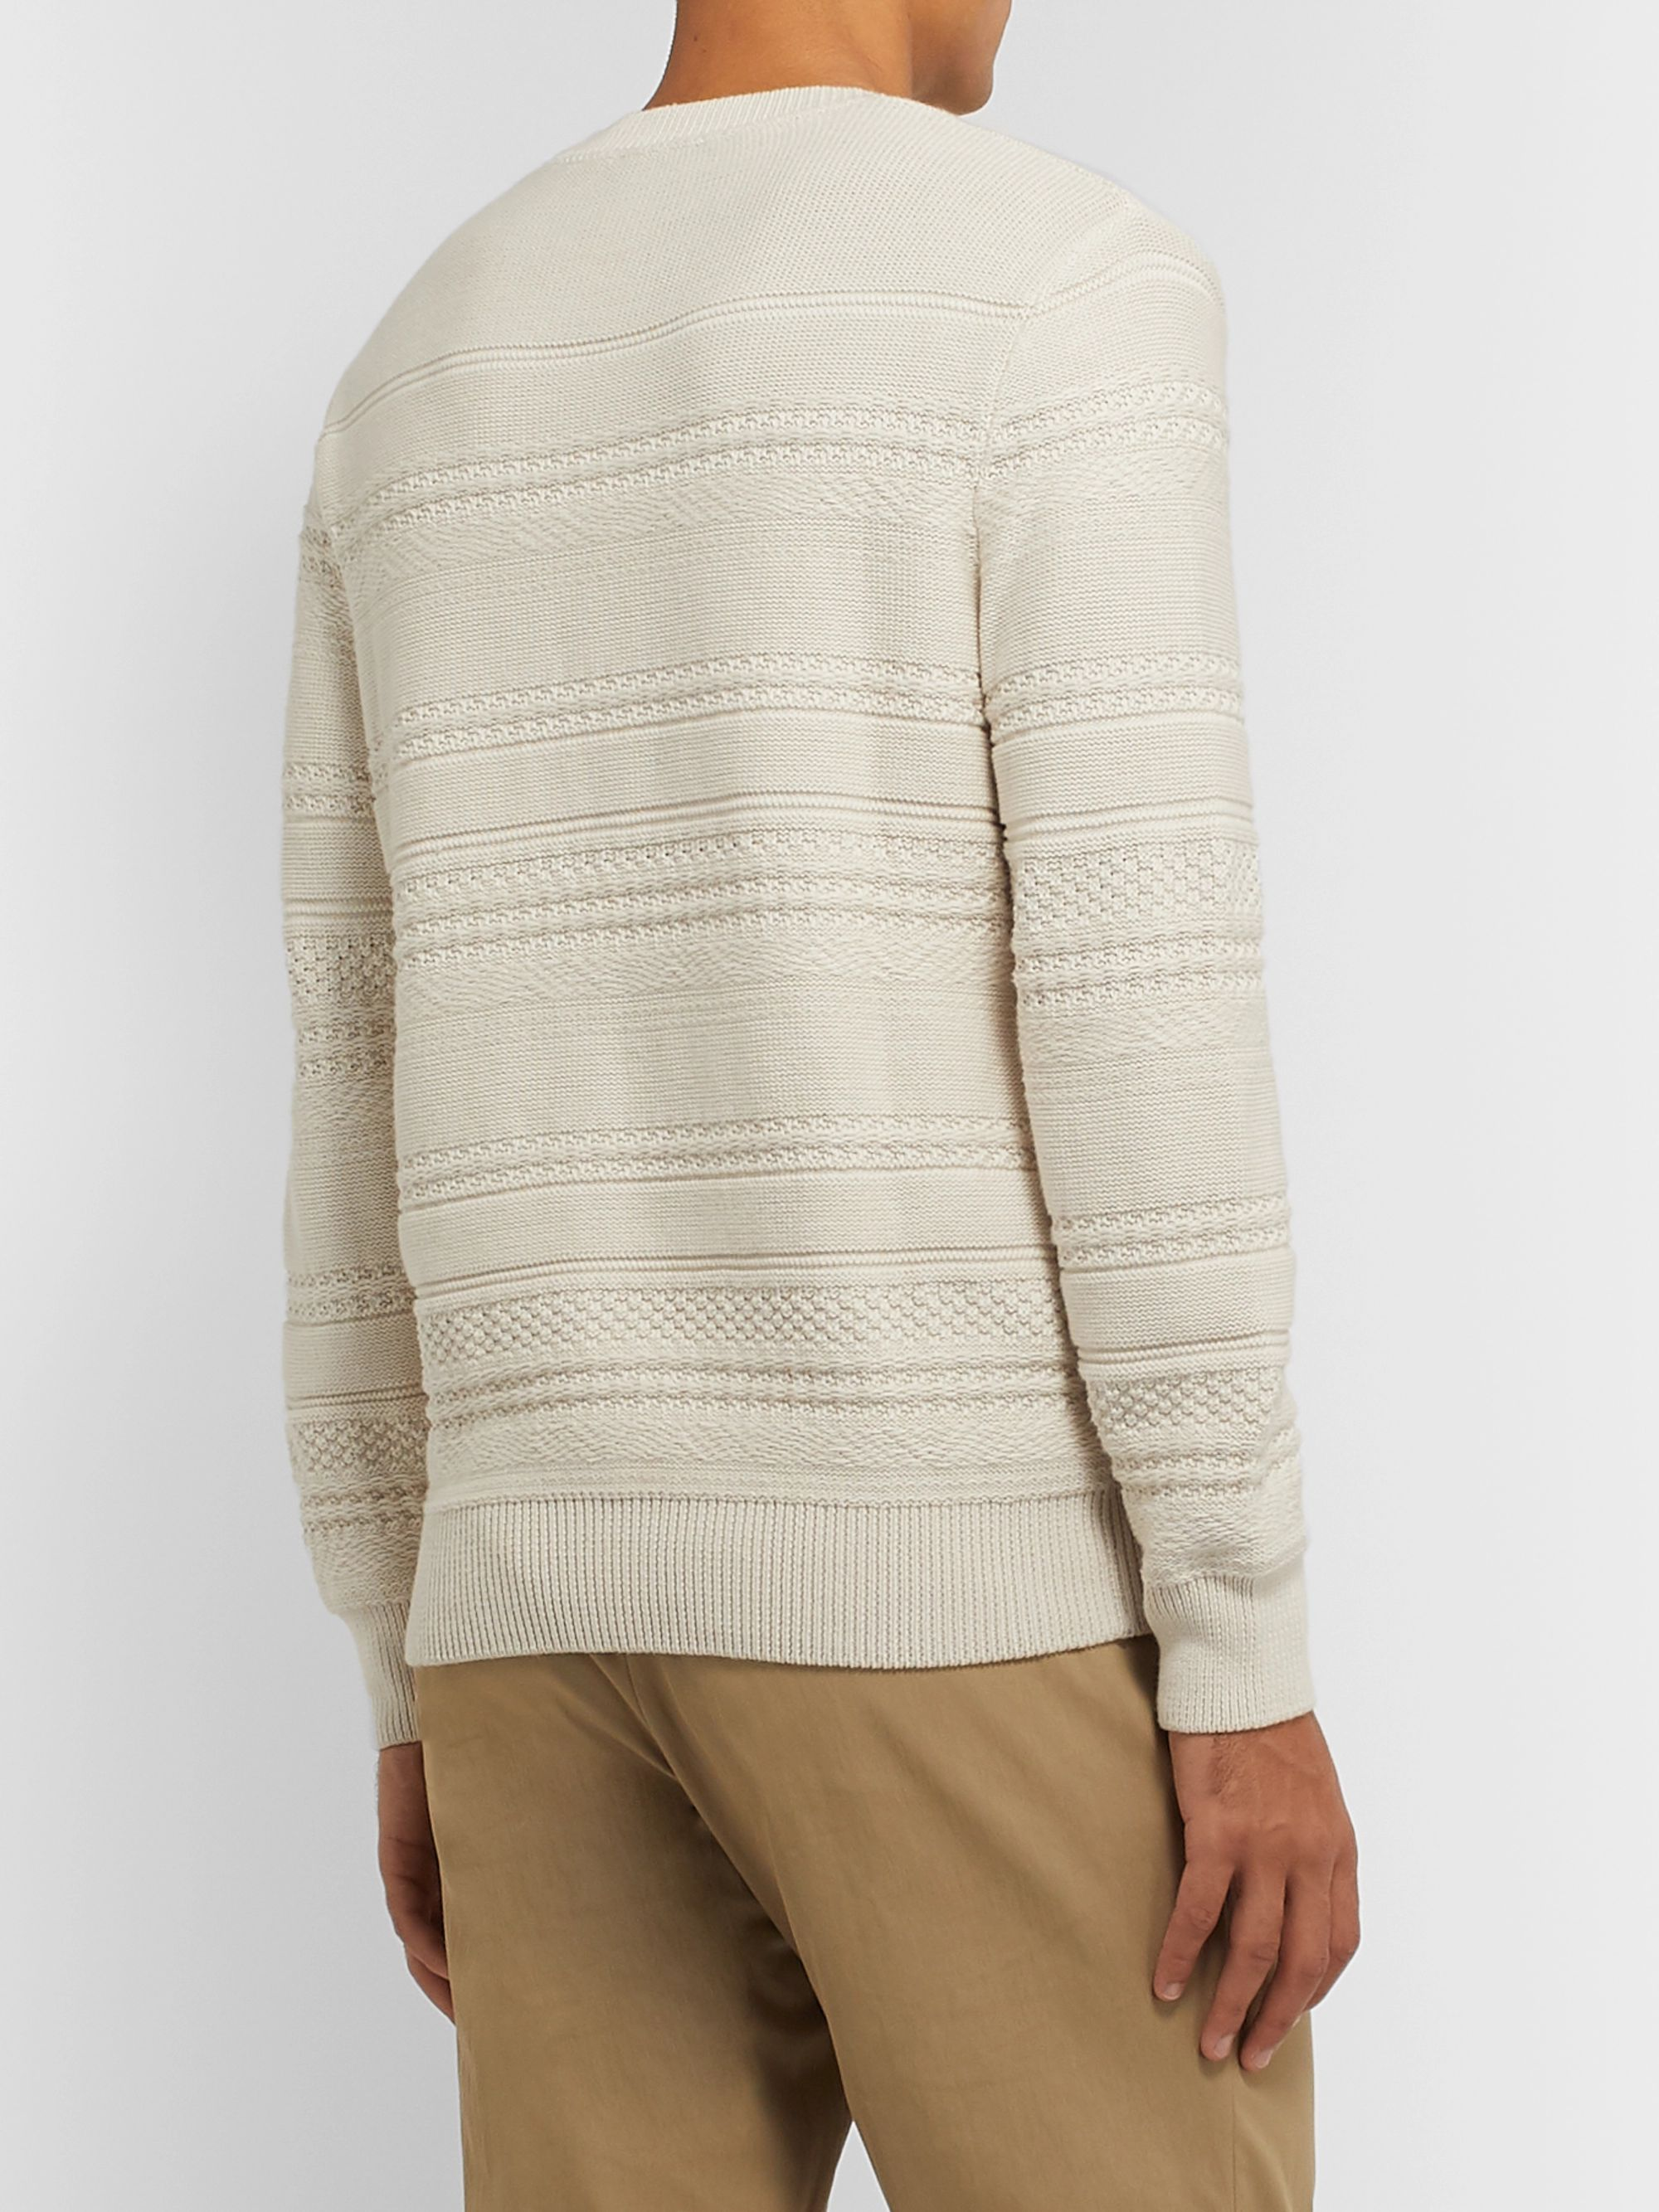 A.P.C. Nicolas Cable-Knit Cotton Sweater